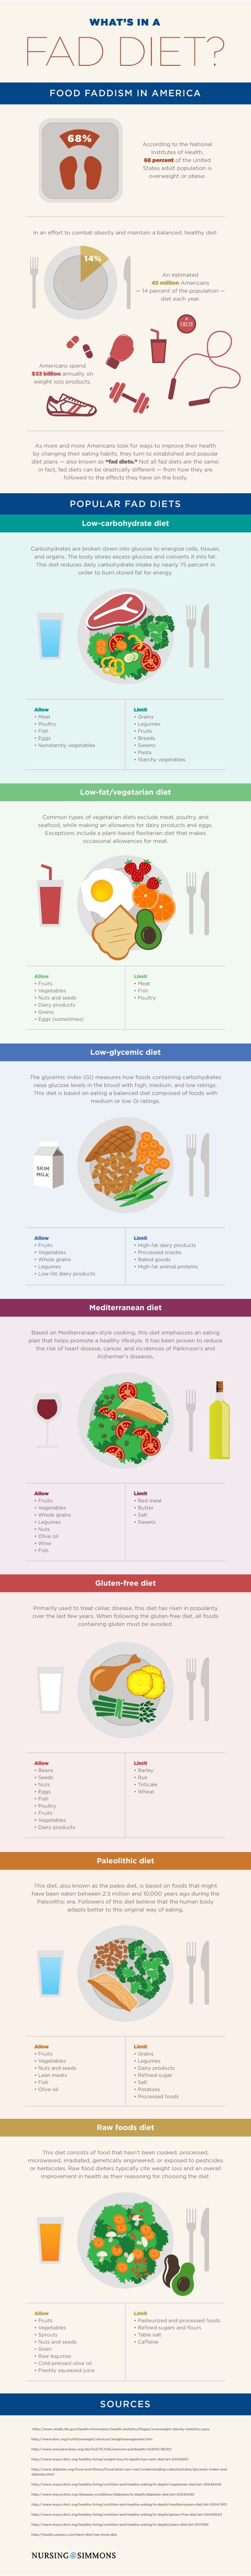 This pin is a good resource to illustrate the types of food restrictions the popularized fad diets have.  It is important to understand that these diets all effect the body differently and excluding an entire food group from ones diet can have lasting life-threatening effects.  It's important to educate the public because the popularity of these fad diets come and go but what will truly help weight loss is a healthy well-balanced diet and exercise.